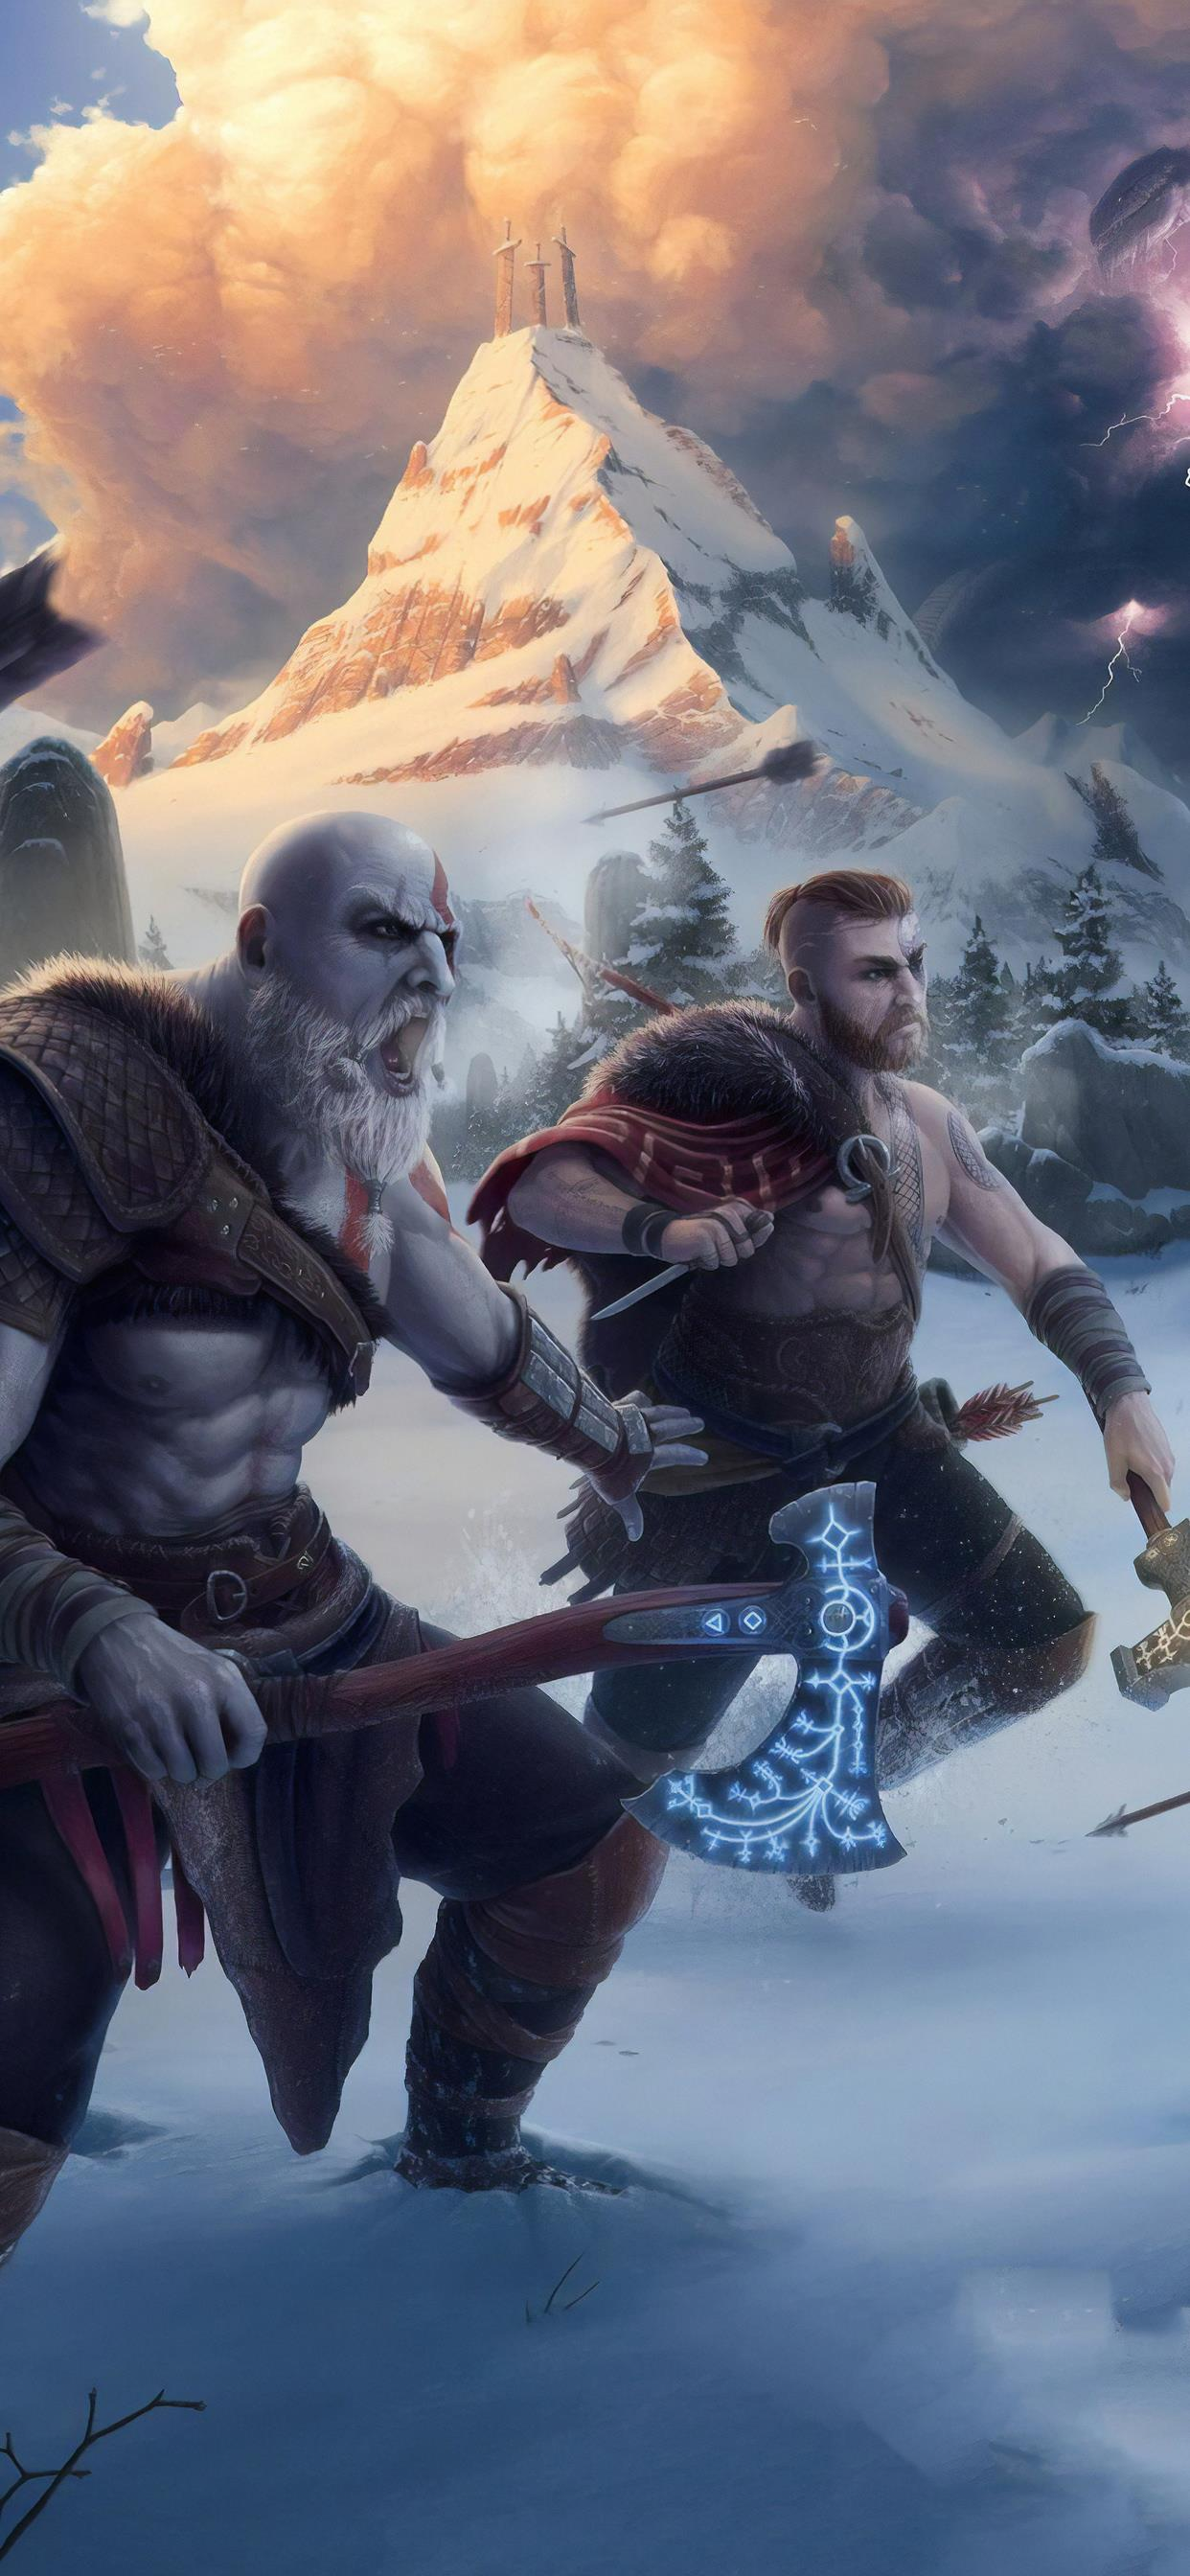 God Of War 4k Artwork Iphone Wallpapers Free Download